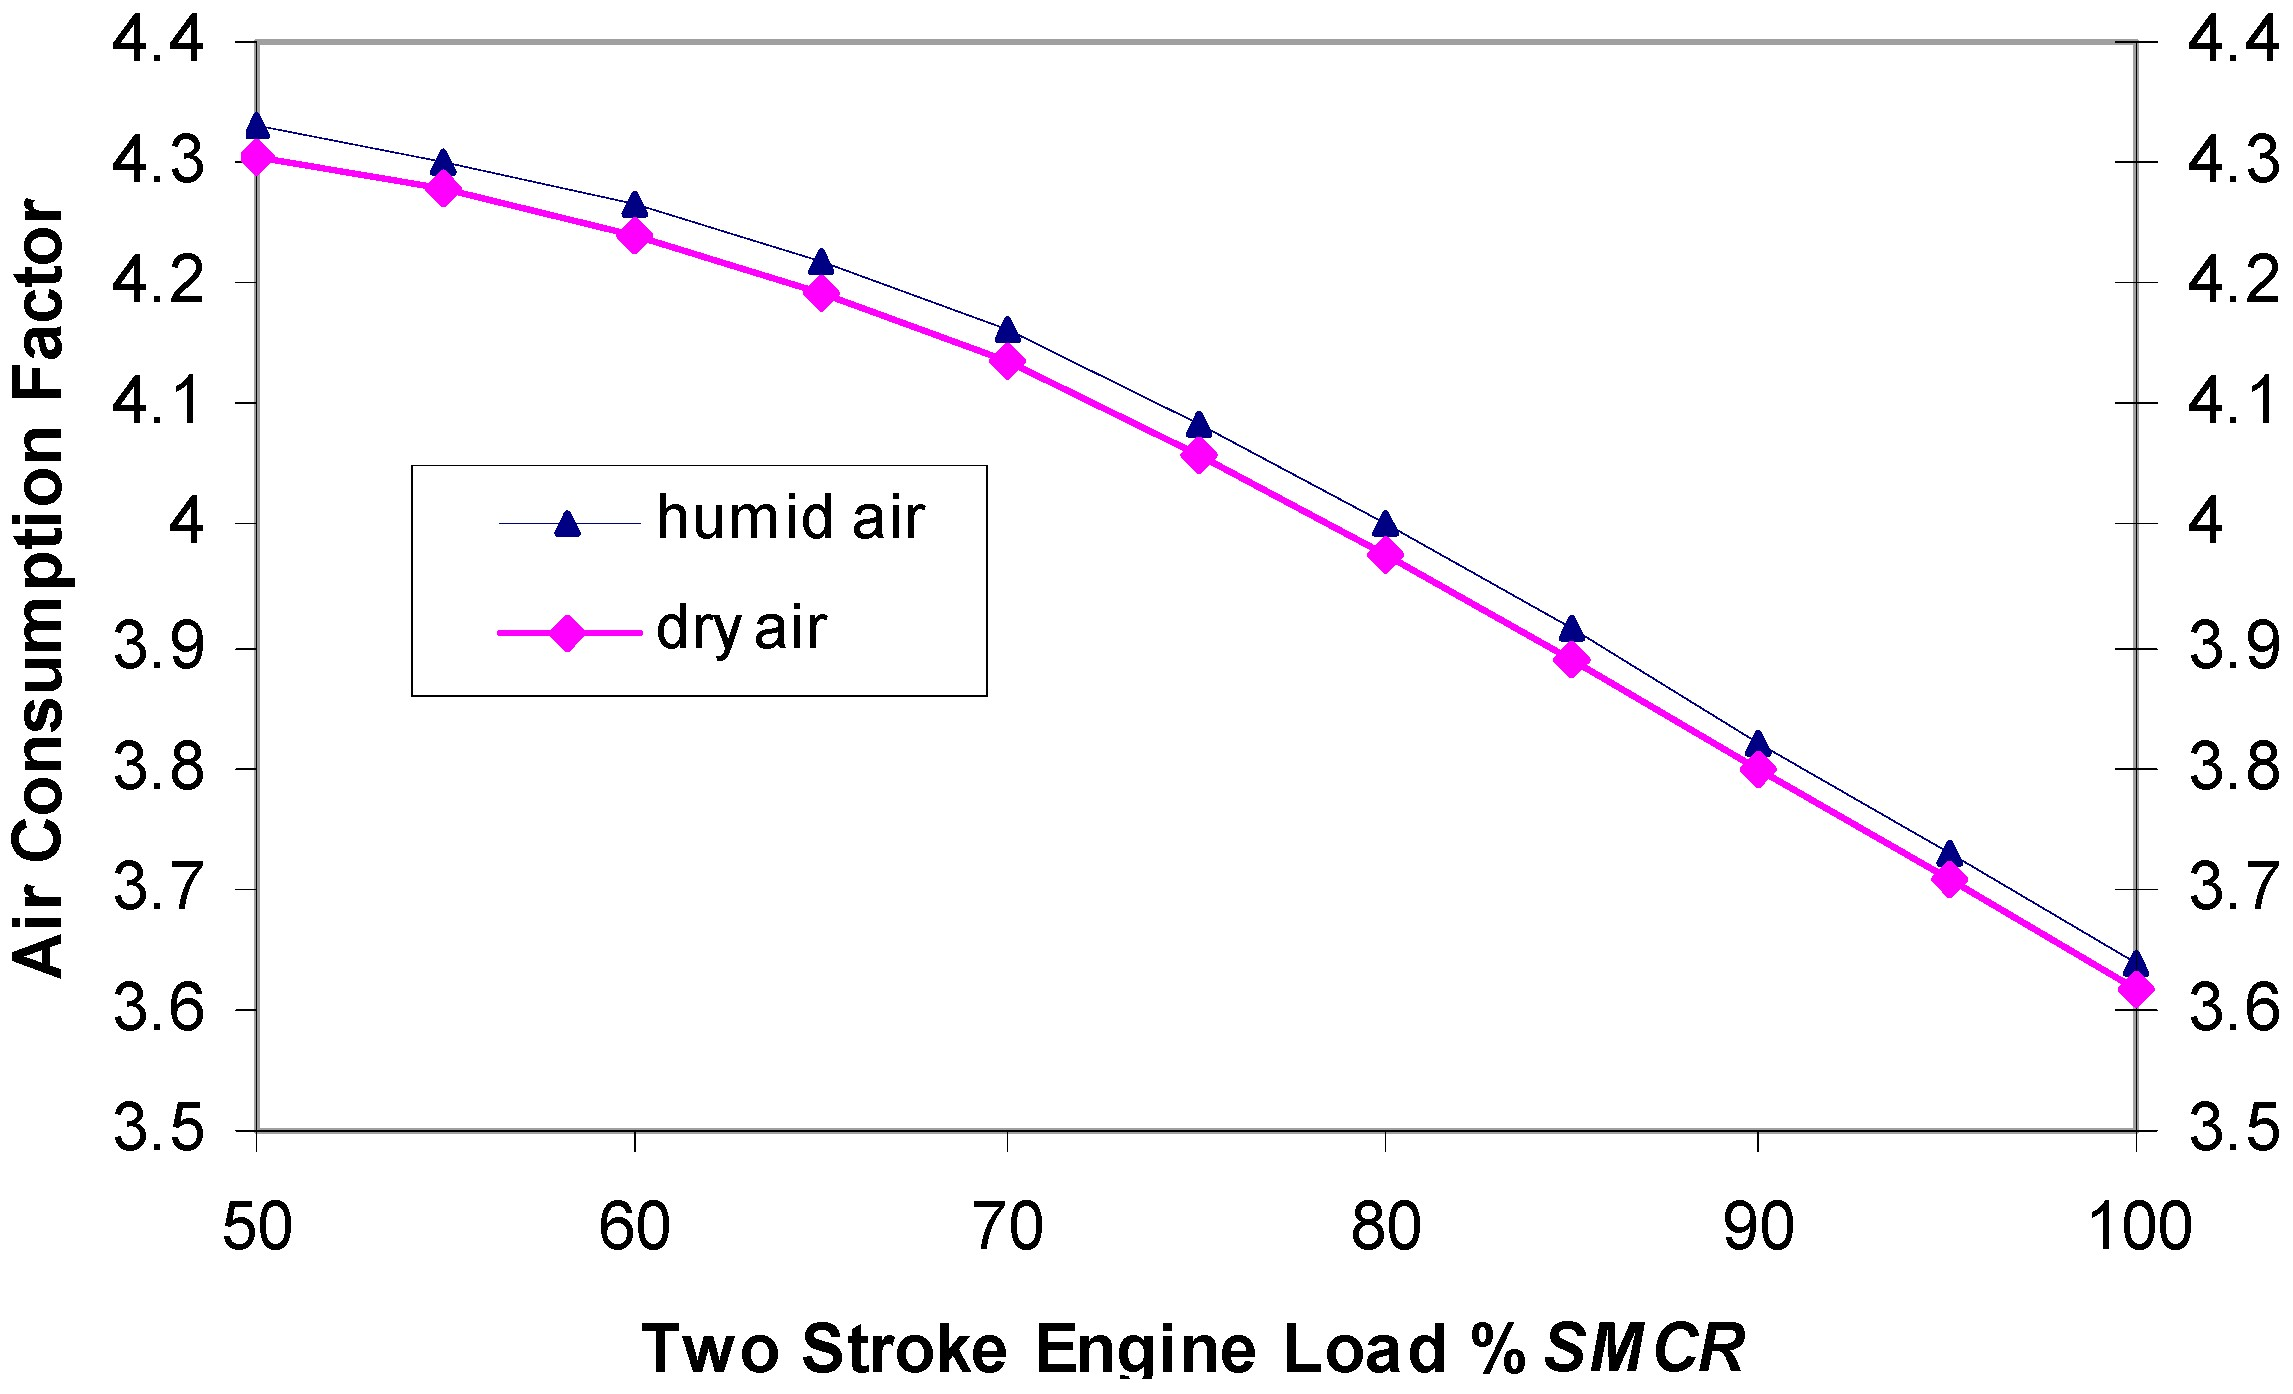 Valve Timing Diagram for Four Stroke Diesel Engine Energies Free Full Text Of Valve Timing Diagram for Four Stroke Diesel Engine